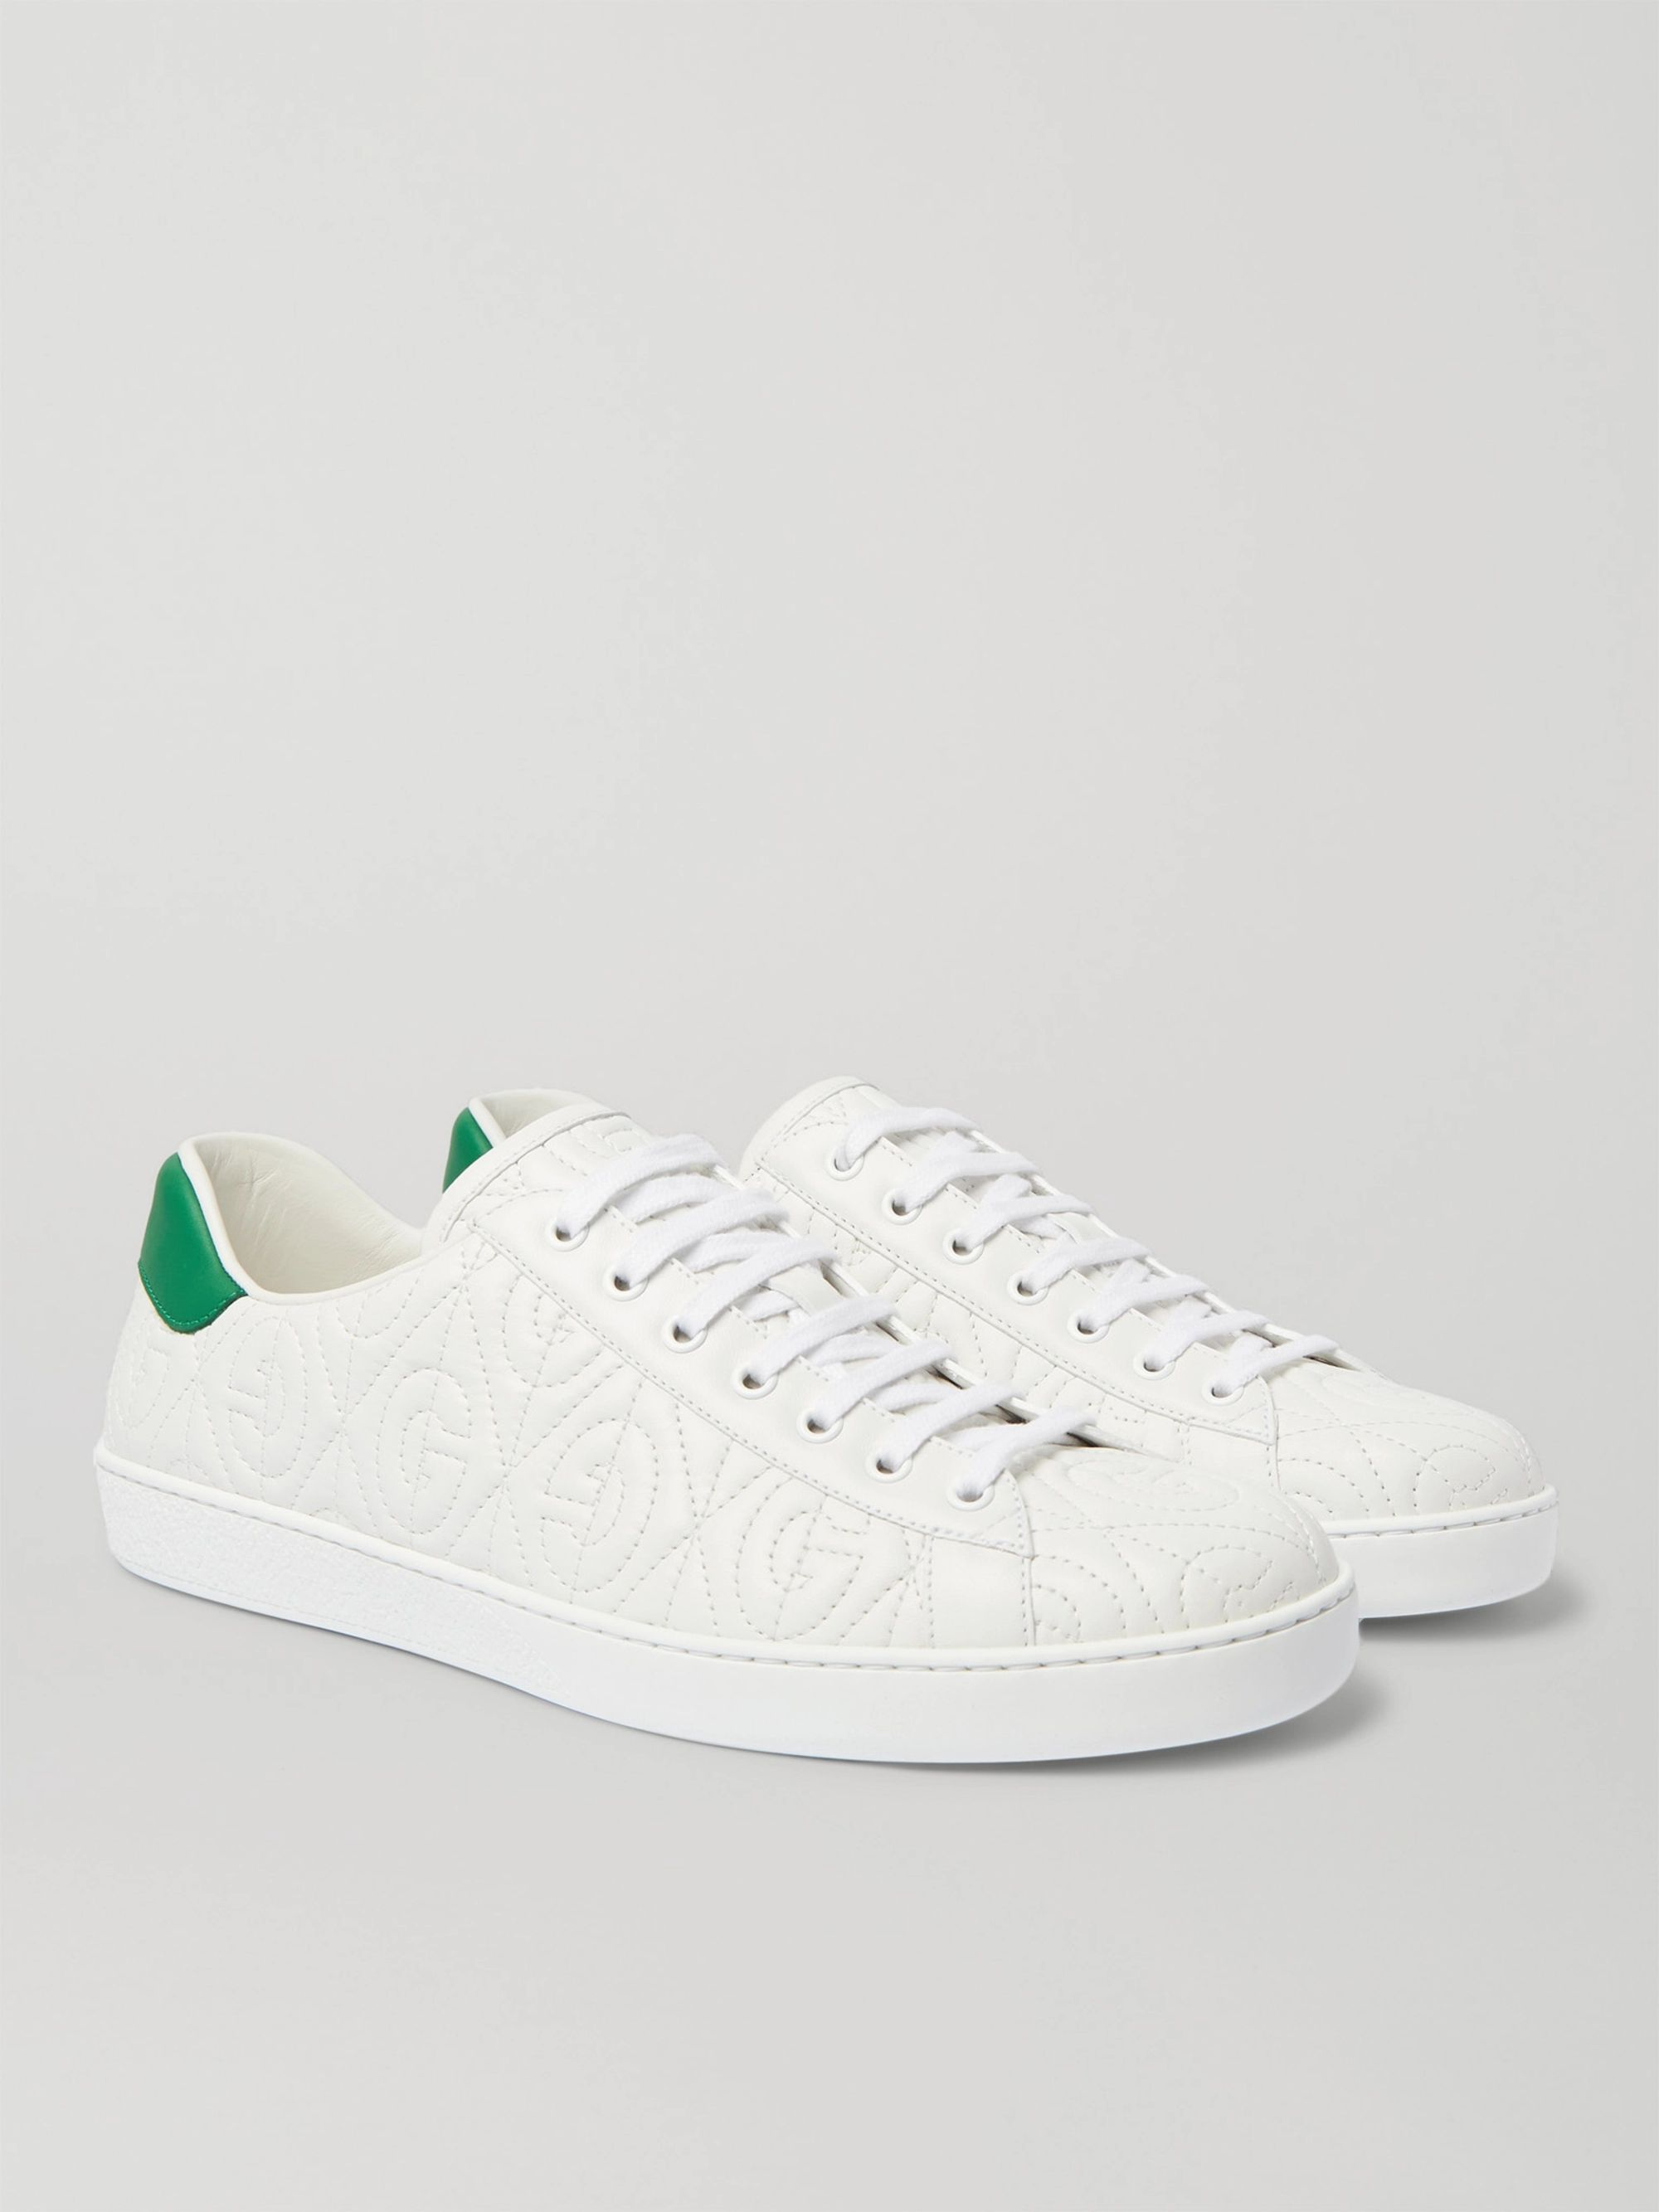 Gucci Ace G Rhombus Quilted Leather Sneakers